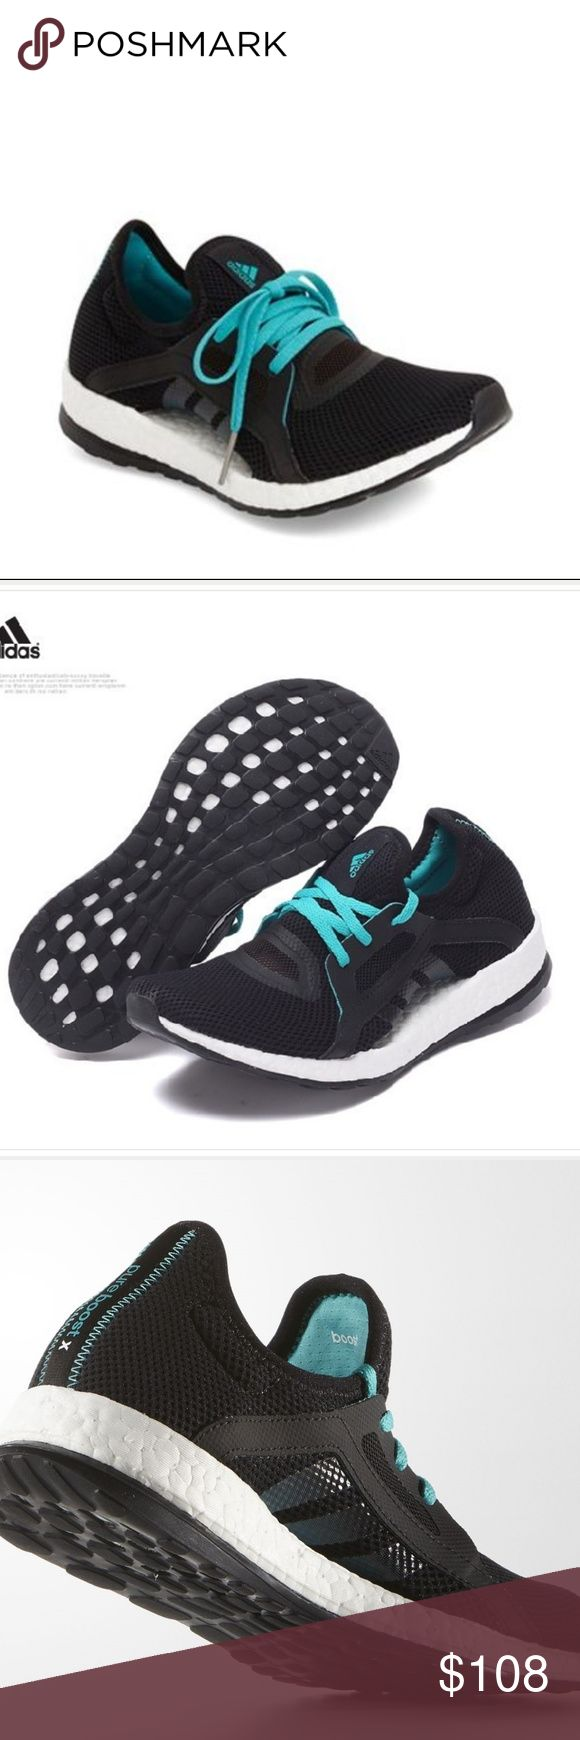 ADIDAS PURE BOOST X Black Teal Laces Womens 5 1/2 ADIDAS PURE BOOST X Black Teal Laces Womens 5 1/2. New Unworn with no OG Box. ADIDAS Shoes Athletic Shoes